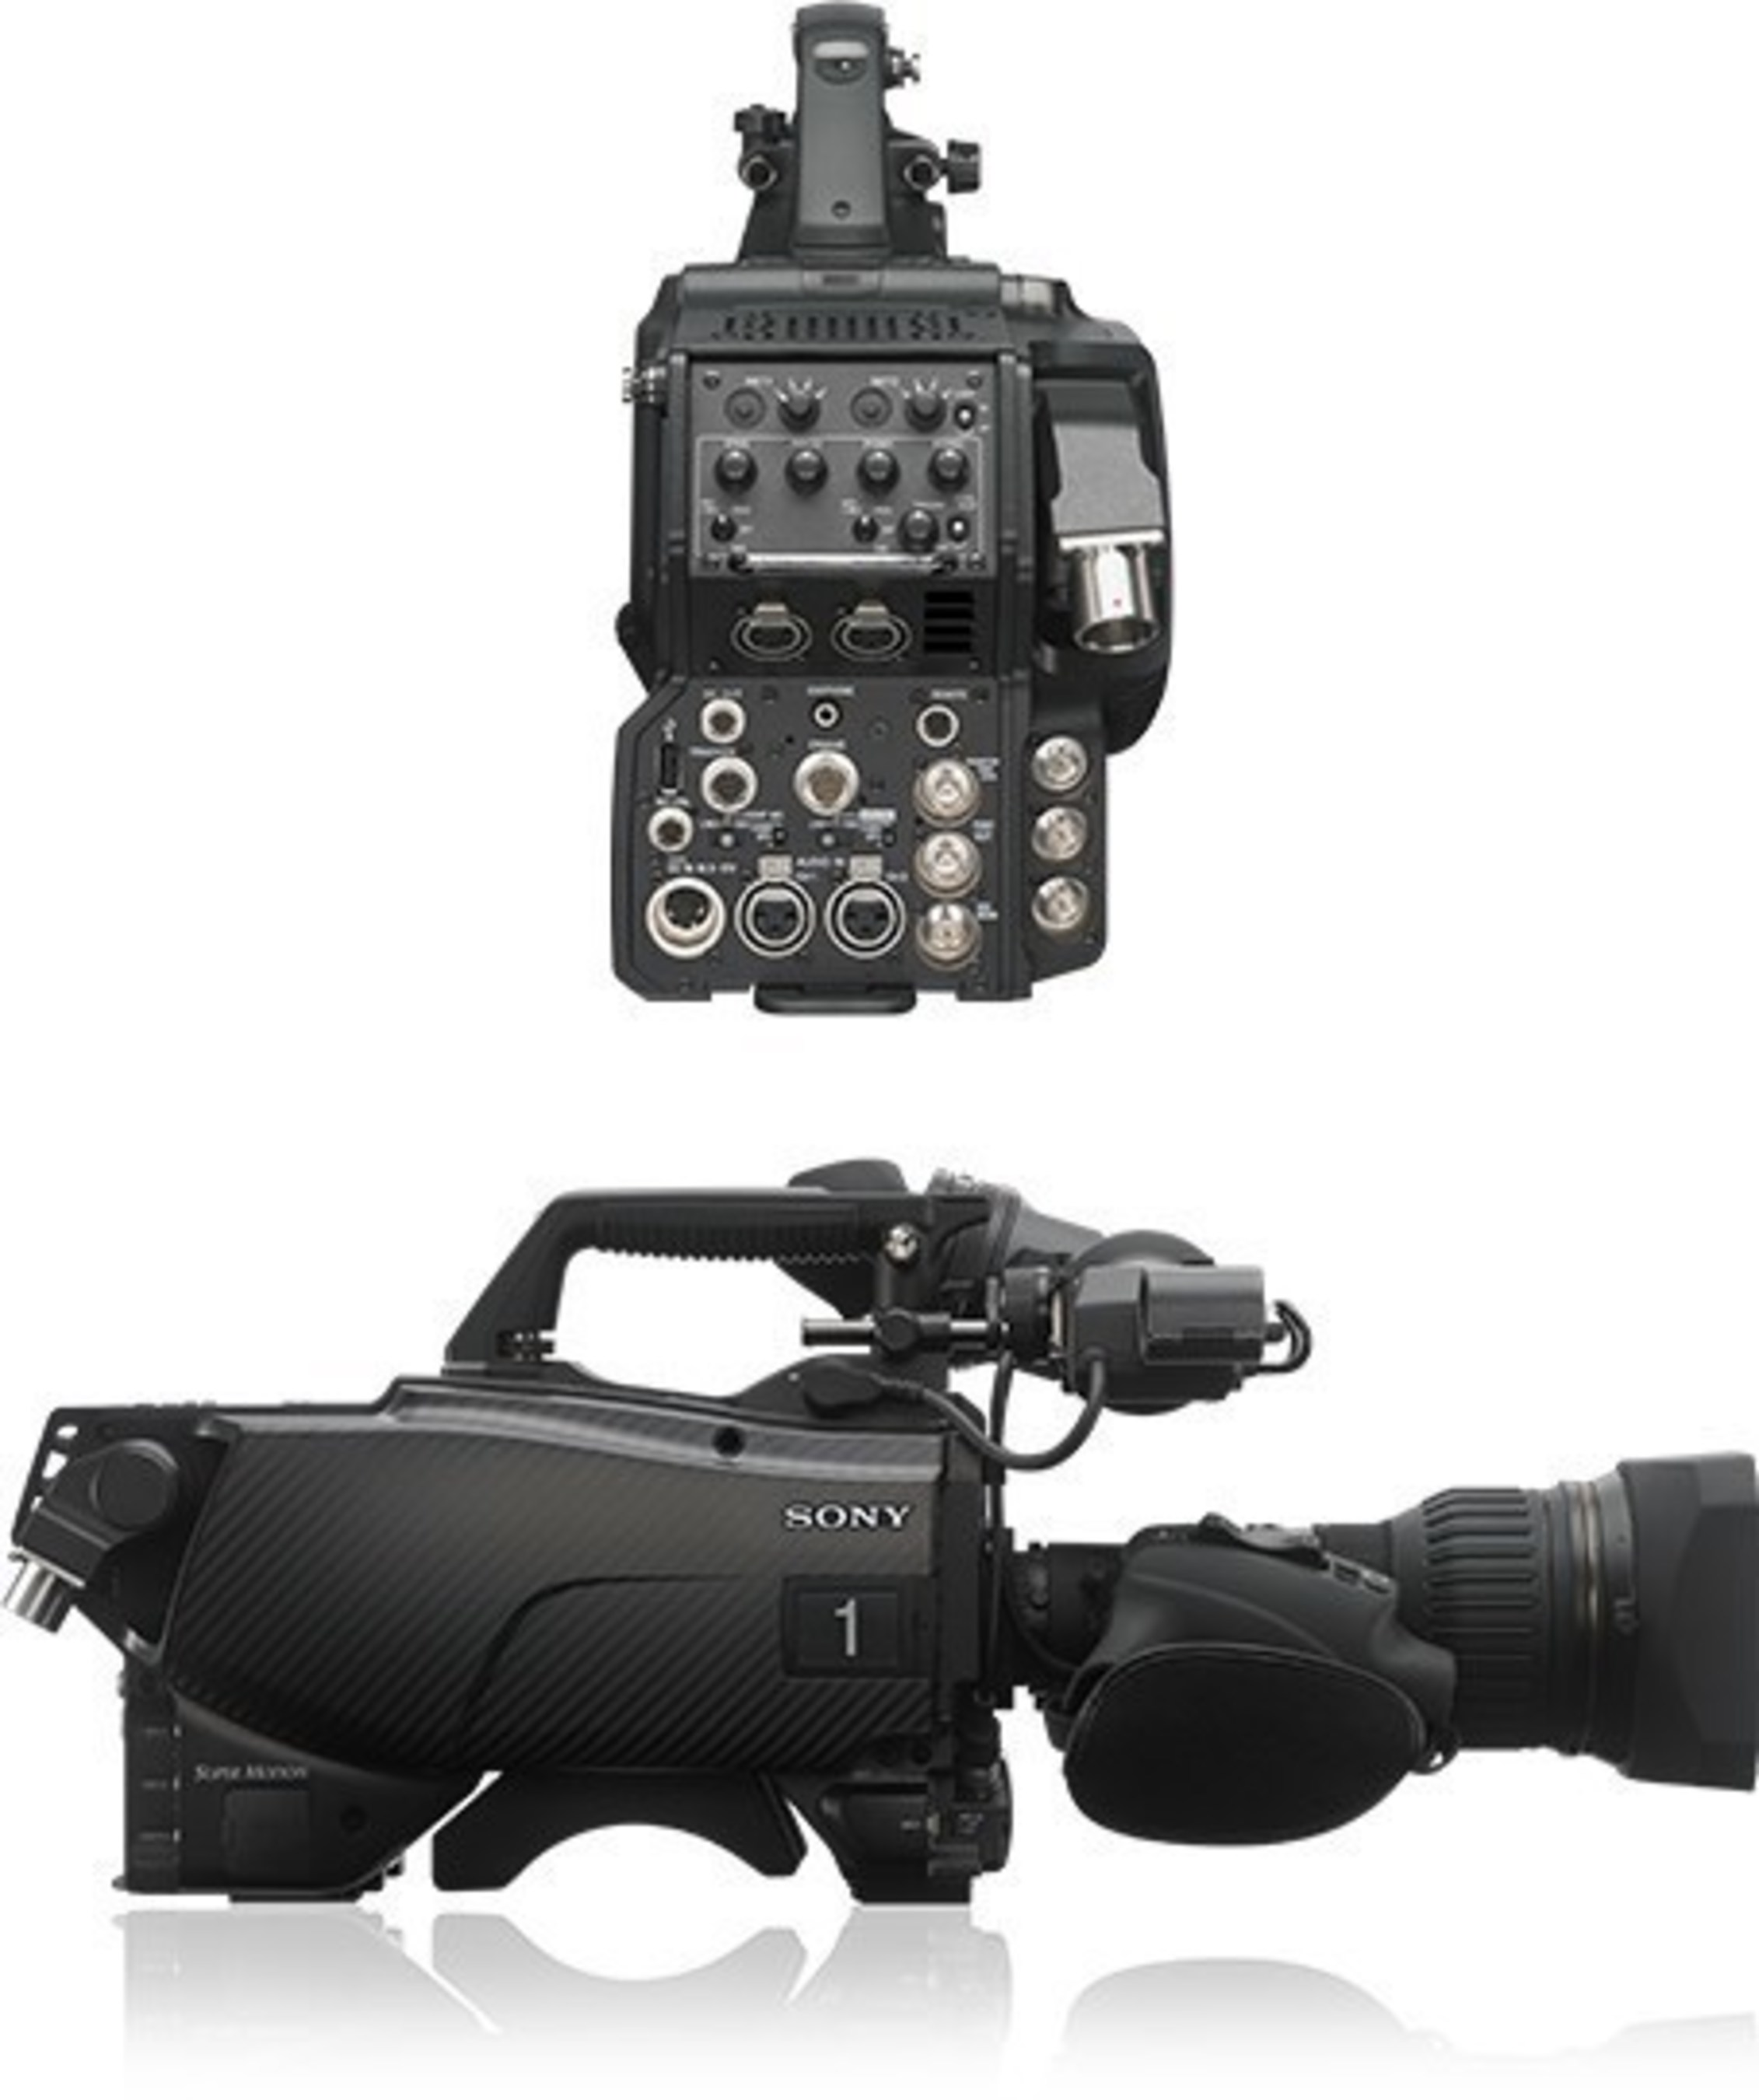 Sony HDC-4300 4K/3G-SDI HD System Cameras Used To Broadcast Men's Clay Court Championship Tournament